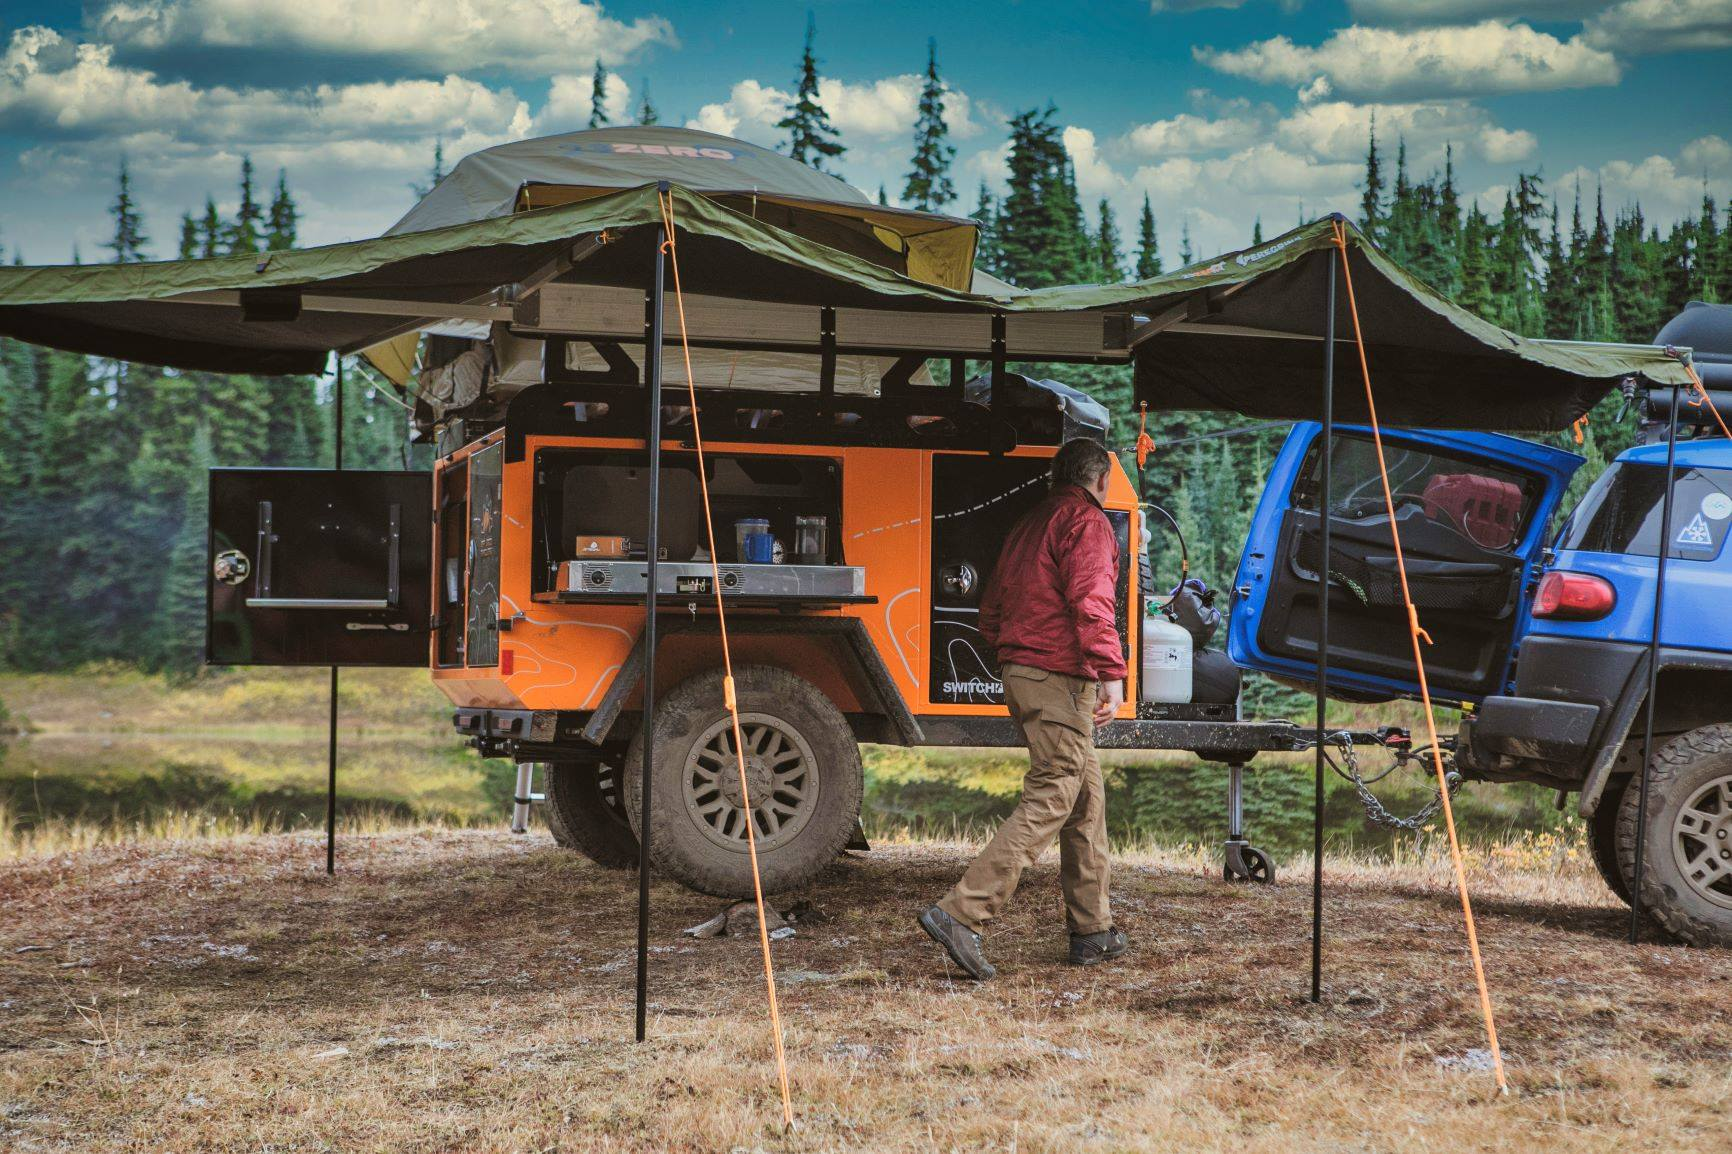 The Off Grid Switchback S offers a drop-down side kitchen with dual-burner stove and available sink